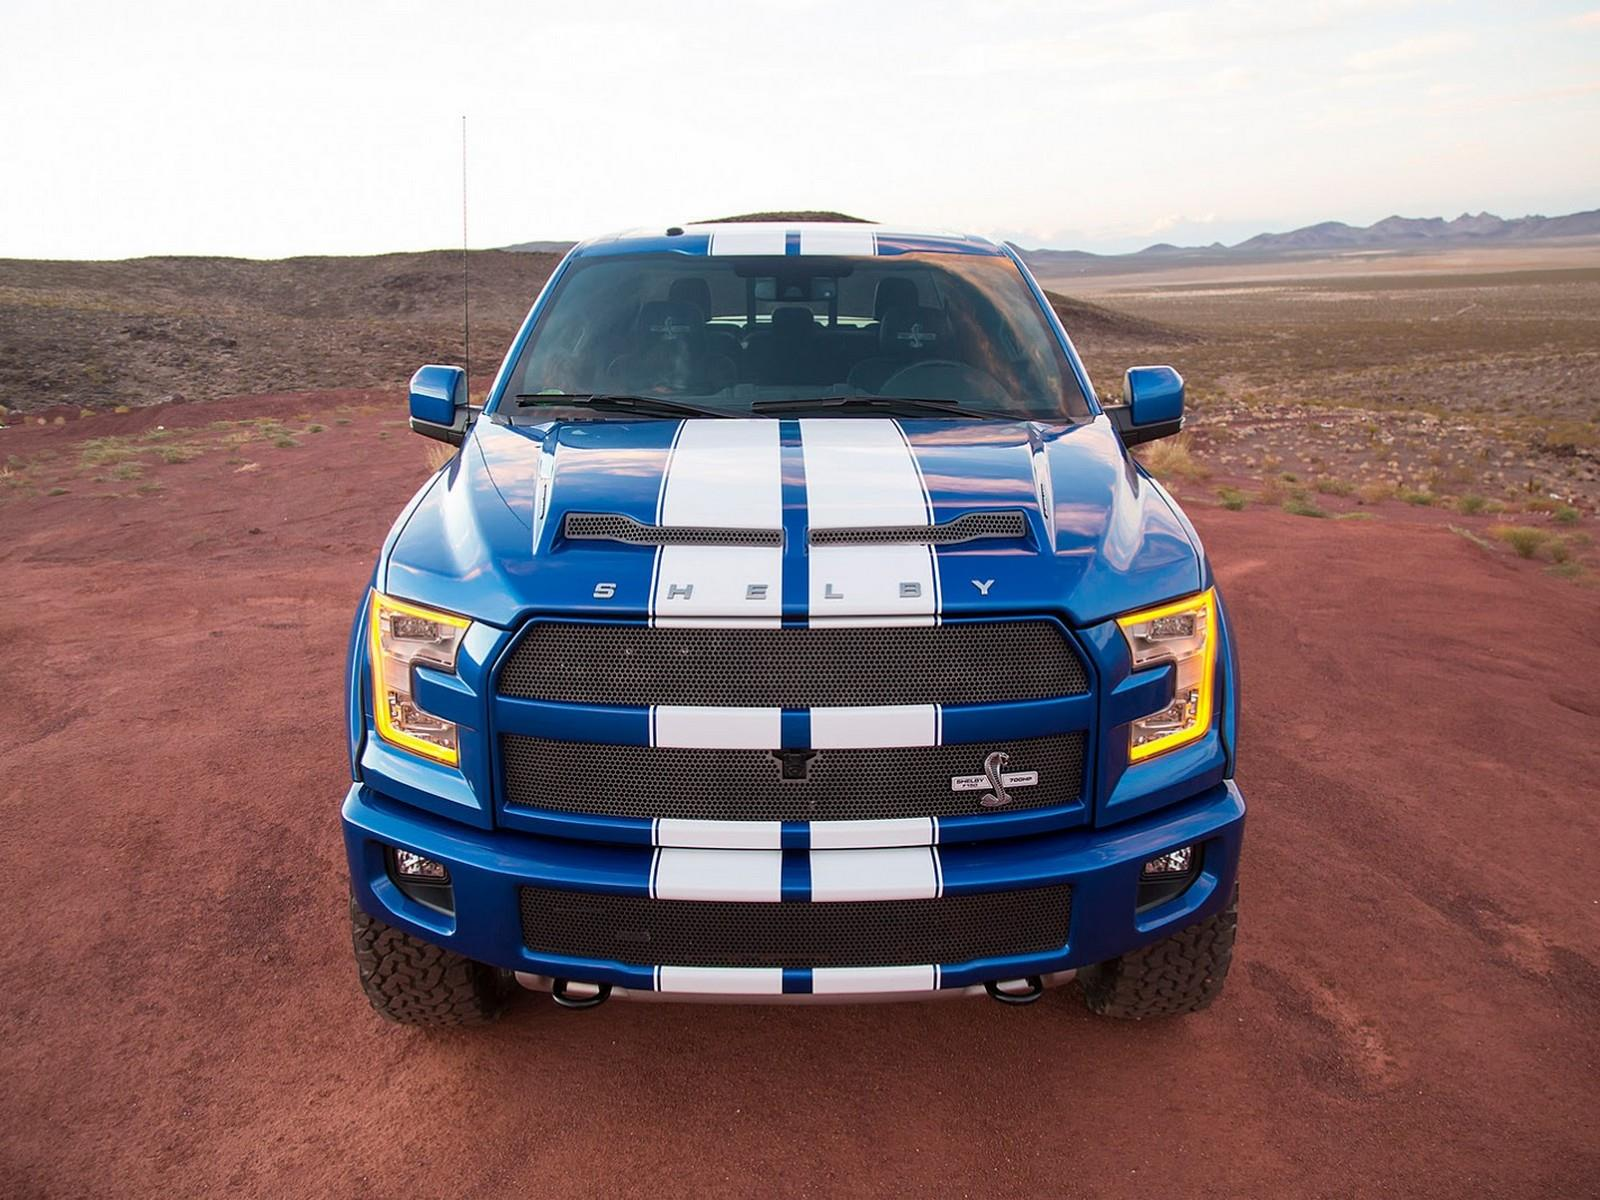 Ford F 150 Shelby >> Shelby F-150, una super pick up de 700 hp - Autocosmos.com